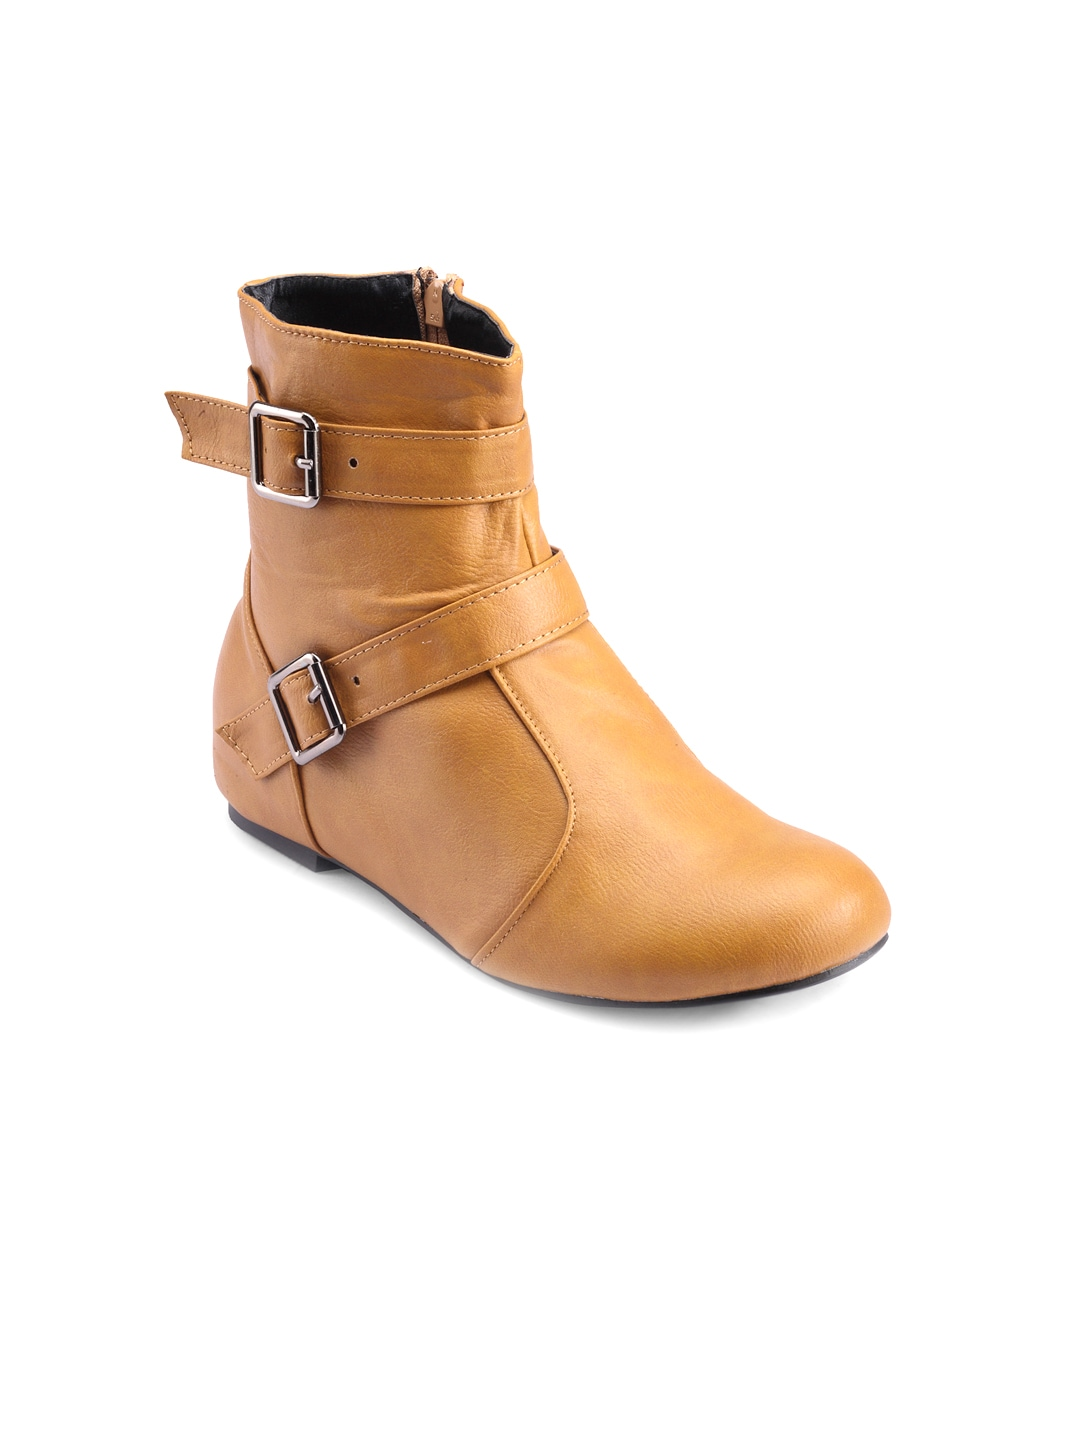 Nell Nell Women Tan Brown Boots (Beige\/Sand\/Tan)